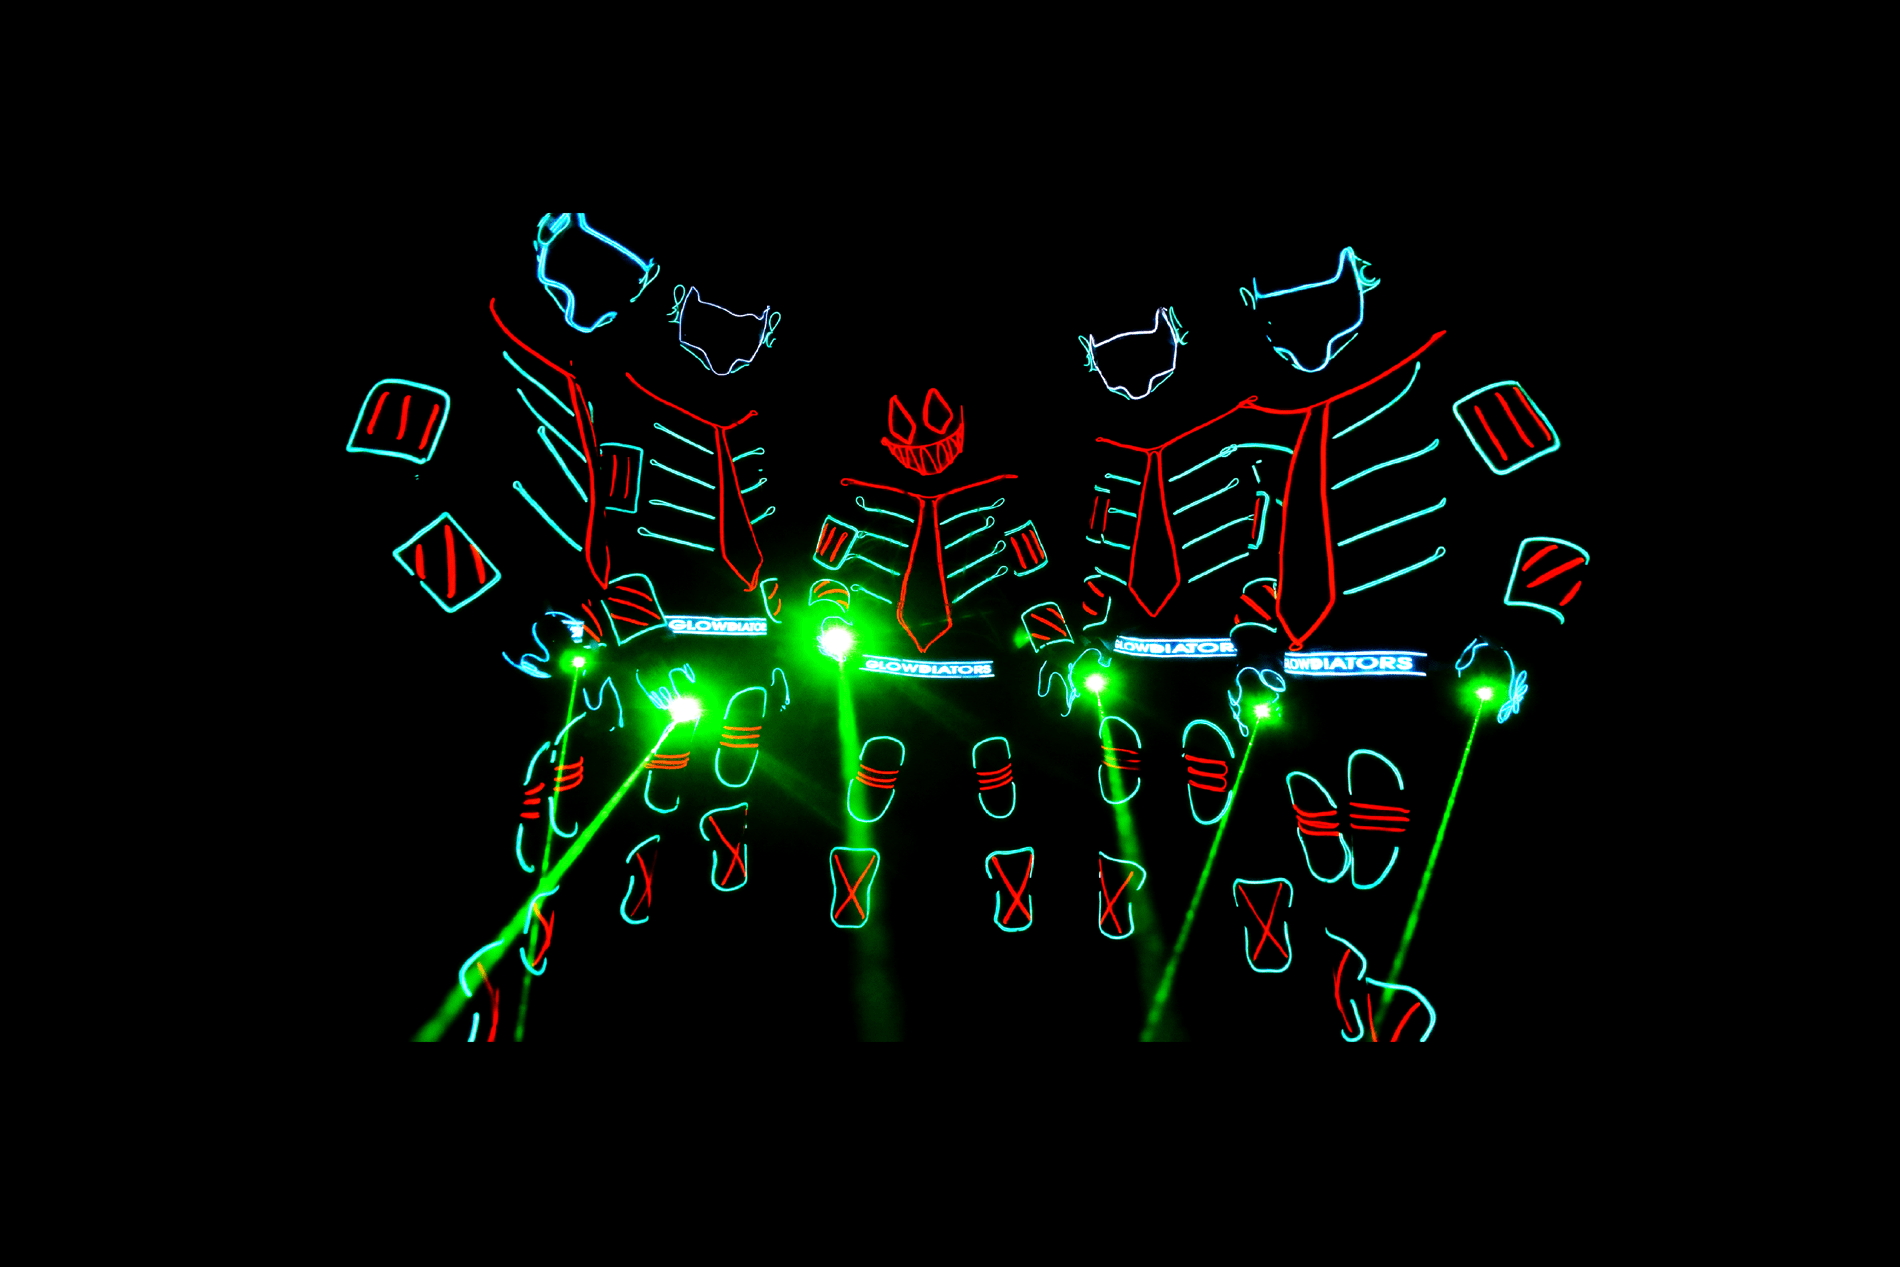 LED Dance Group